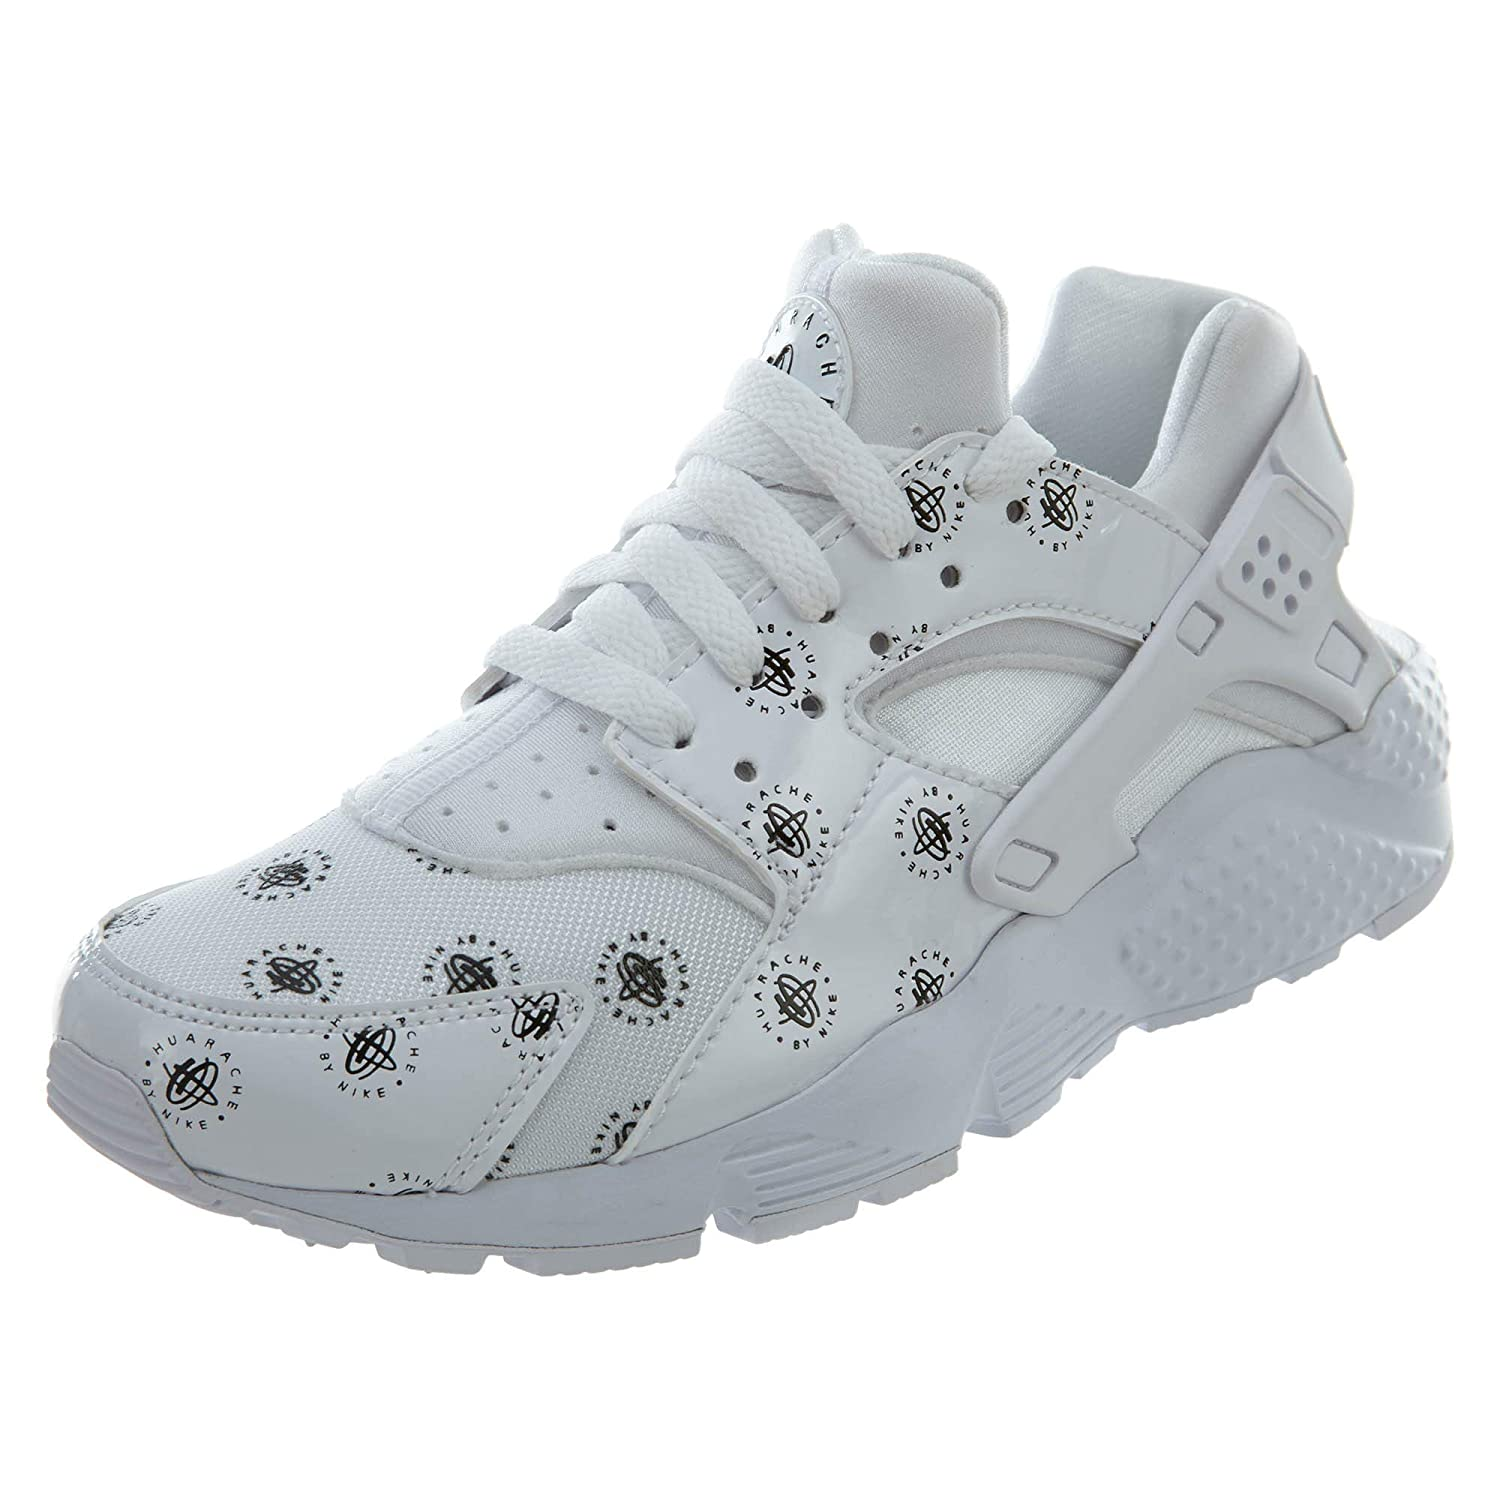 separation shoes c1039 a8d81 Nike Huarache Run Gs, Boys  Low Trainers